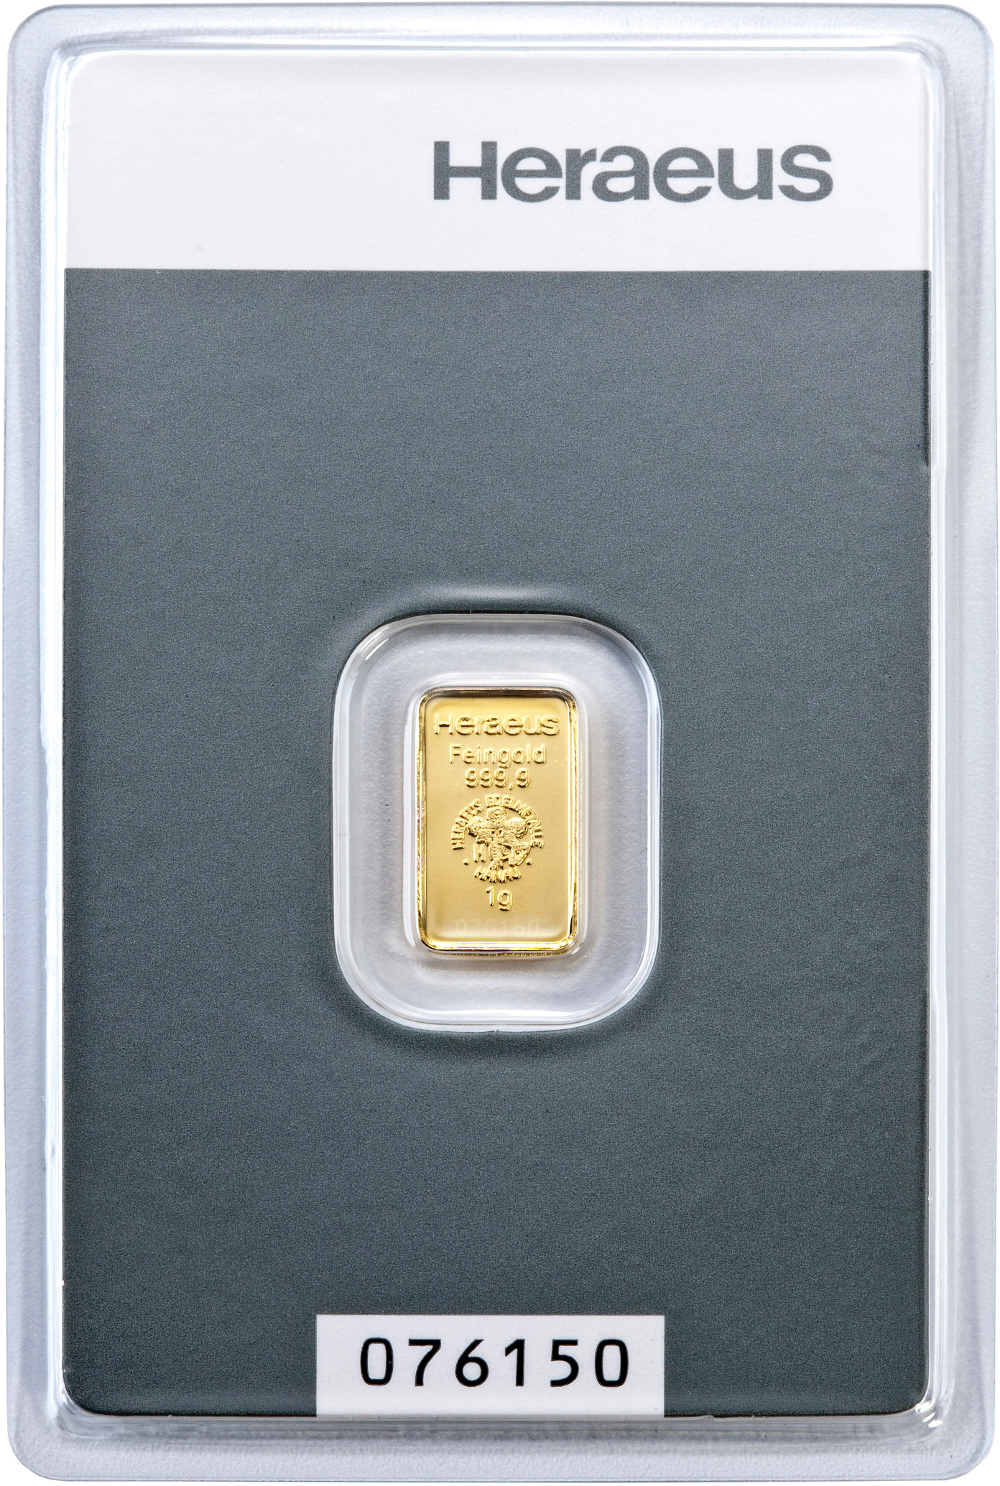 1g Heraeus Gold Bars Bullionbypost From 163 45